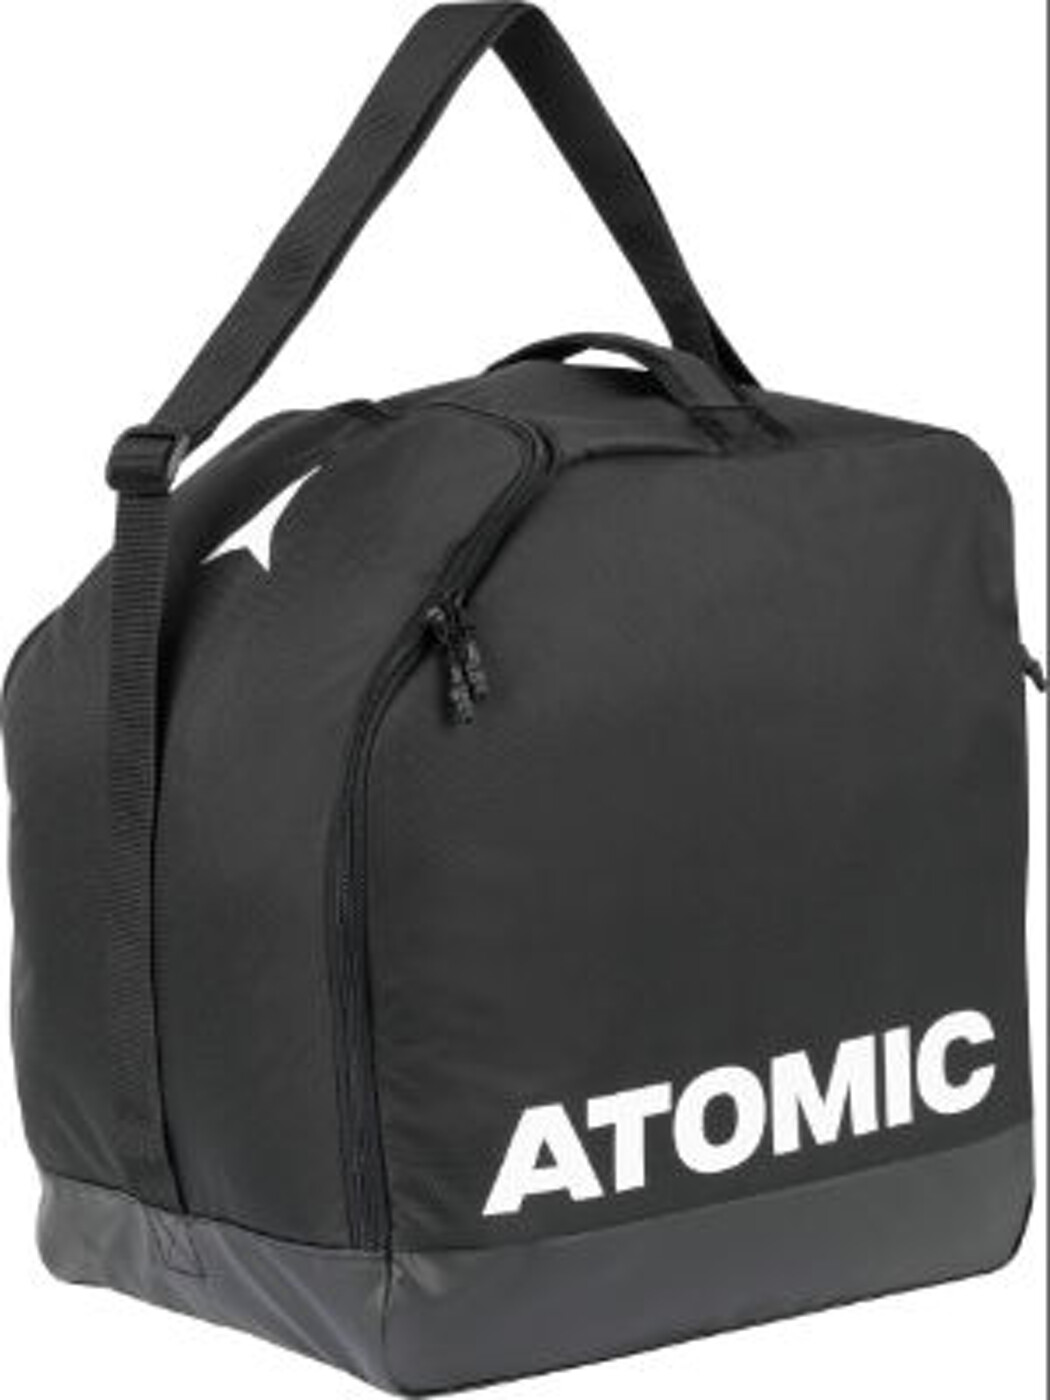 ATOMIC BOOT & HELMET BAG Black/White NS